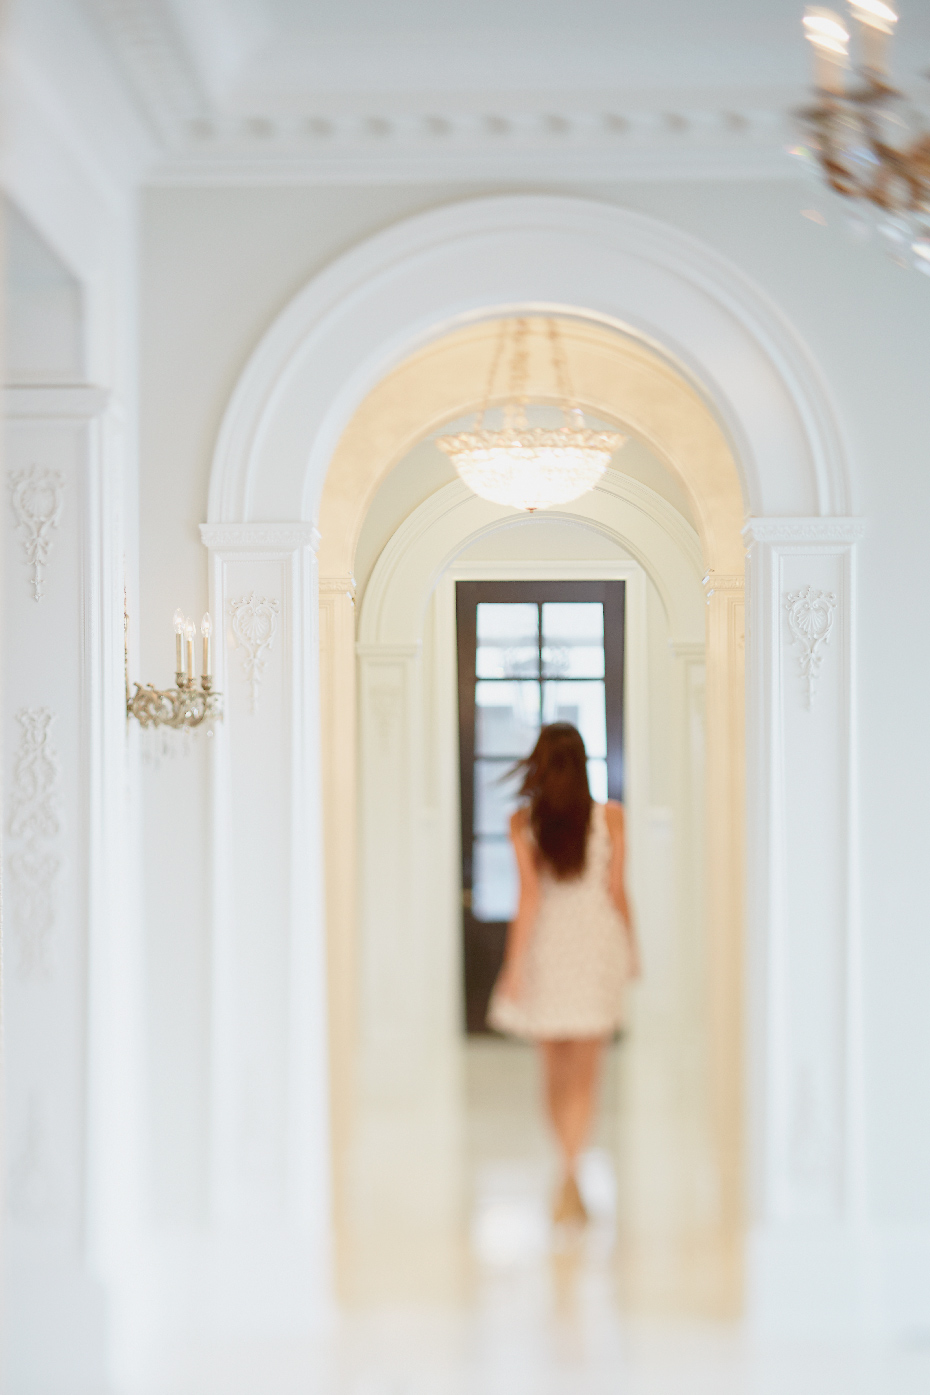 Stacey Van Berkel Photography I Lovely woman walking through archway I White on white I Elegance + glamour I Bernhardt Furniture